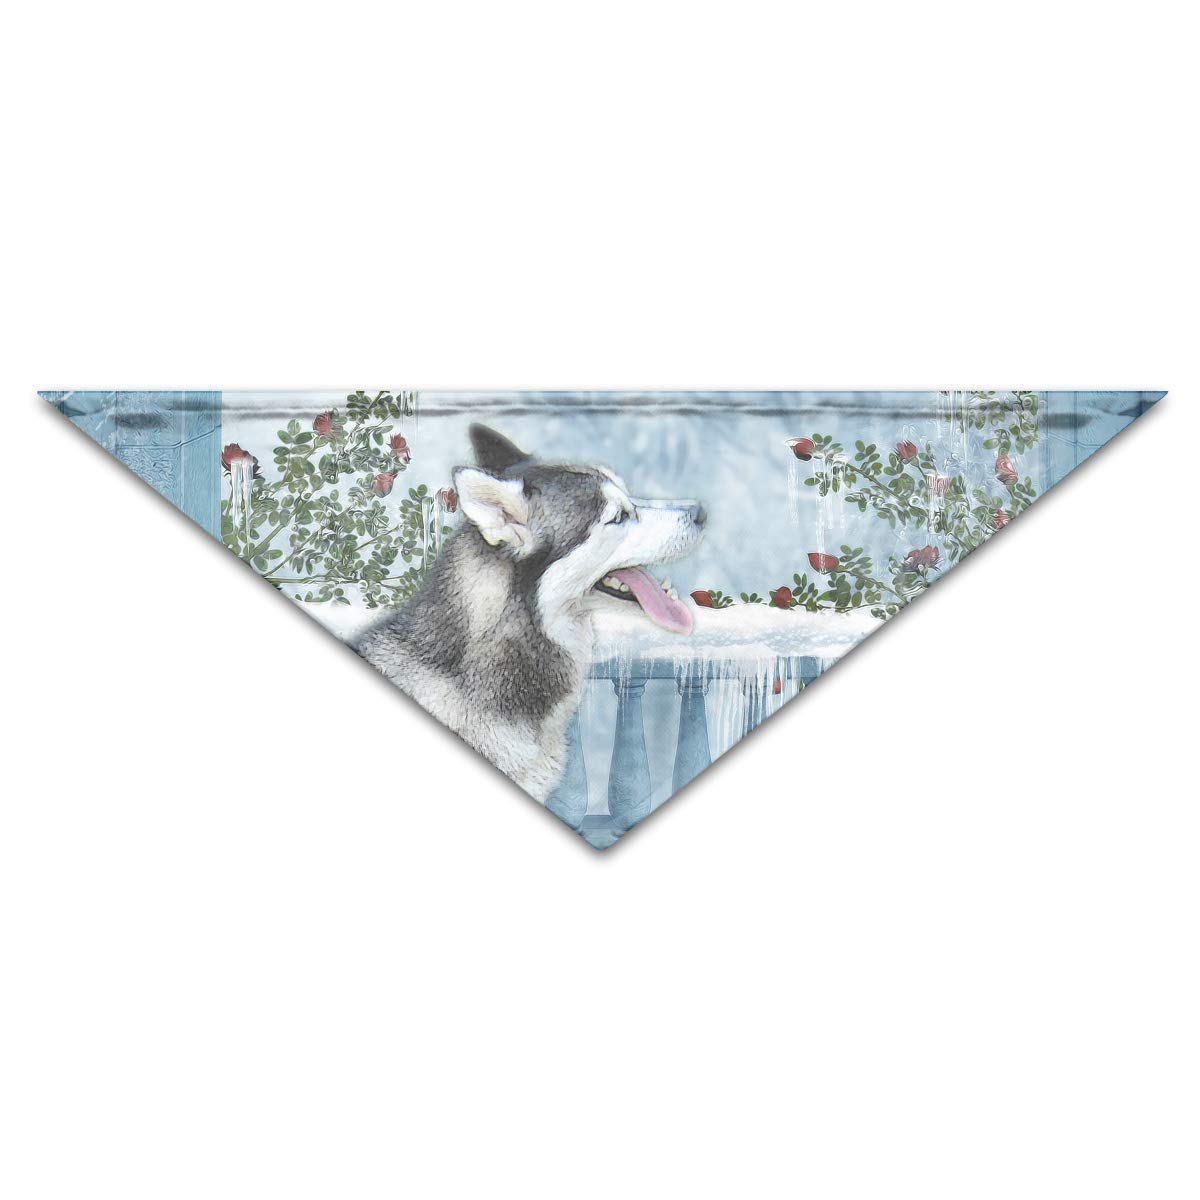 Gxdchfj Siberian-Husky Pet Dog Cat Puppy Bandana Triangle Head Scarfs Accessories